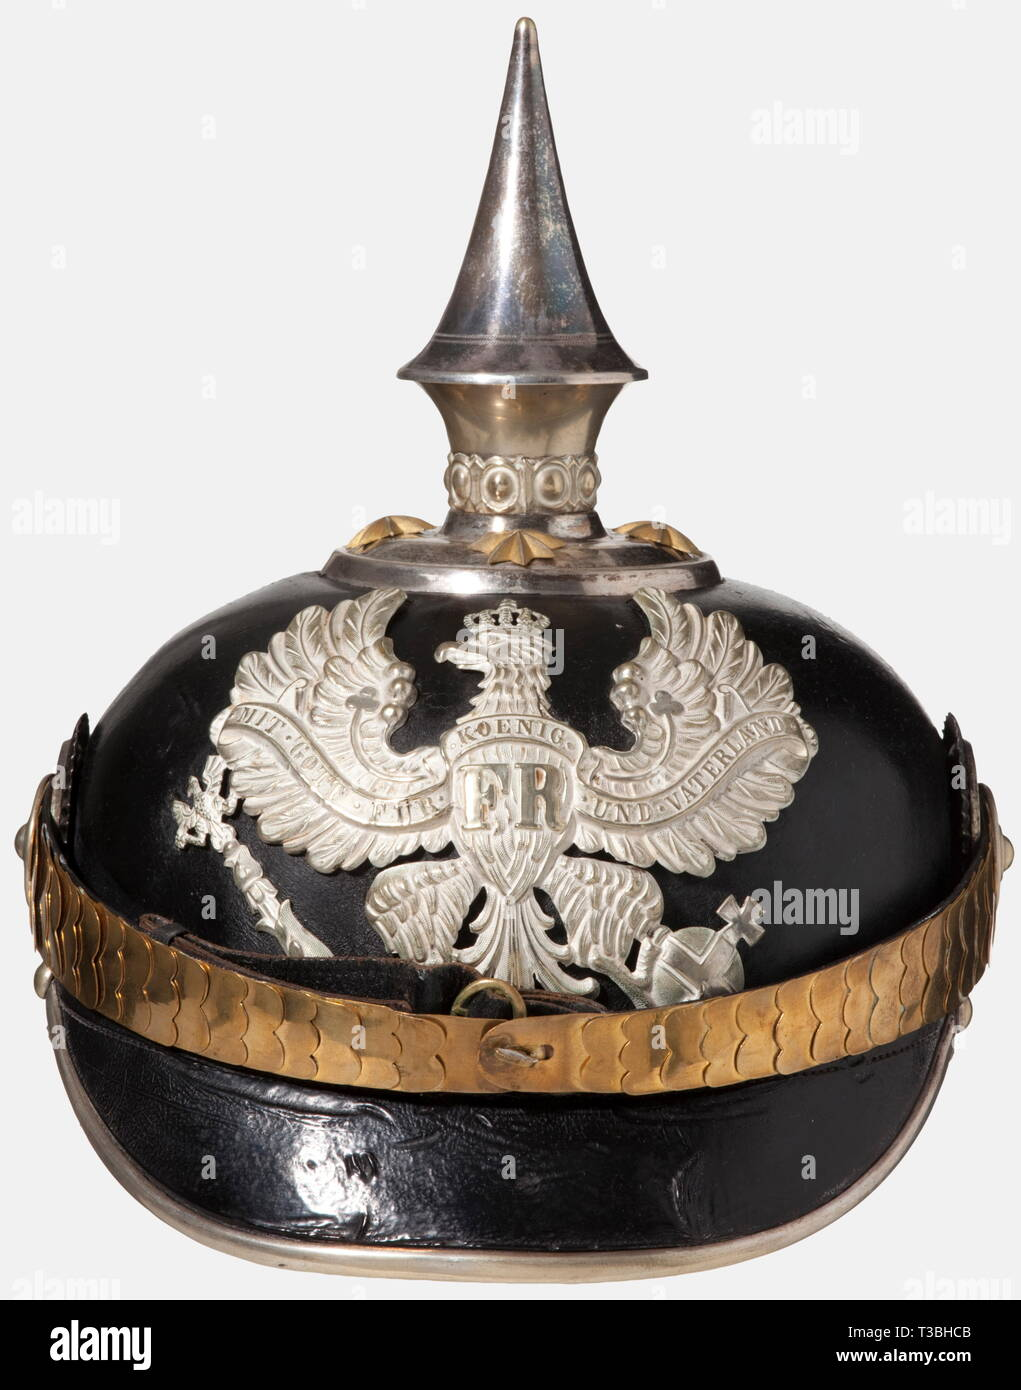 A helmet for officers, of the Prussian Line Pioneer Battalions Black-lacquered fiber body, silver-plated mountings. Line unit eagle. Gilded star screws and flat metal chinscales. Officer's cockades. Beige-coloured ribbed silk lining, torn. Good overall condition, signs of age and wear. historic, historical, 19th century, Prussian, Prussia, German, Germany, militaria, military, object, objects, stills, clipping, clippings, cut out, cut-out, cut-outs, helmet, helmets, headpiece, headpieces, utensil, piece of equipment, utensils, protection, headgea, Additional-Rights-Clearance-Info-Not-Available - Stock Image